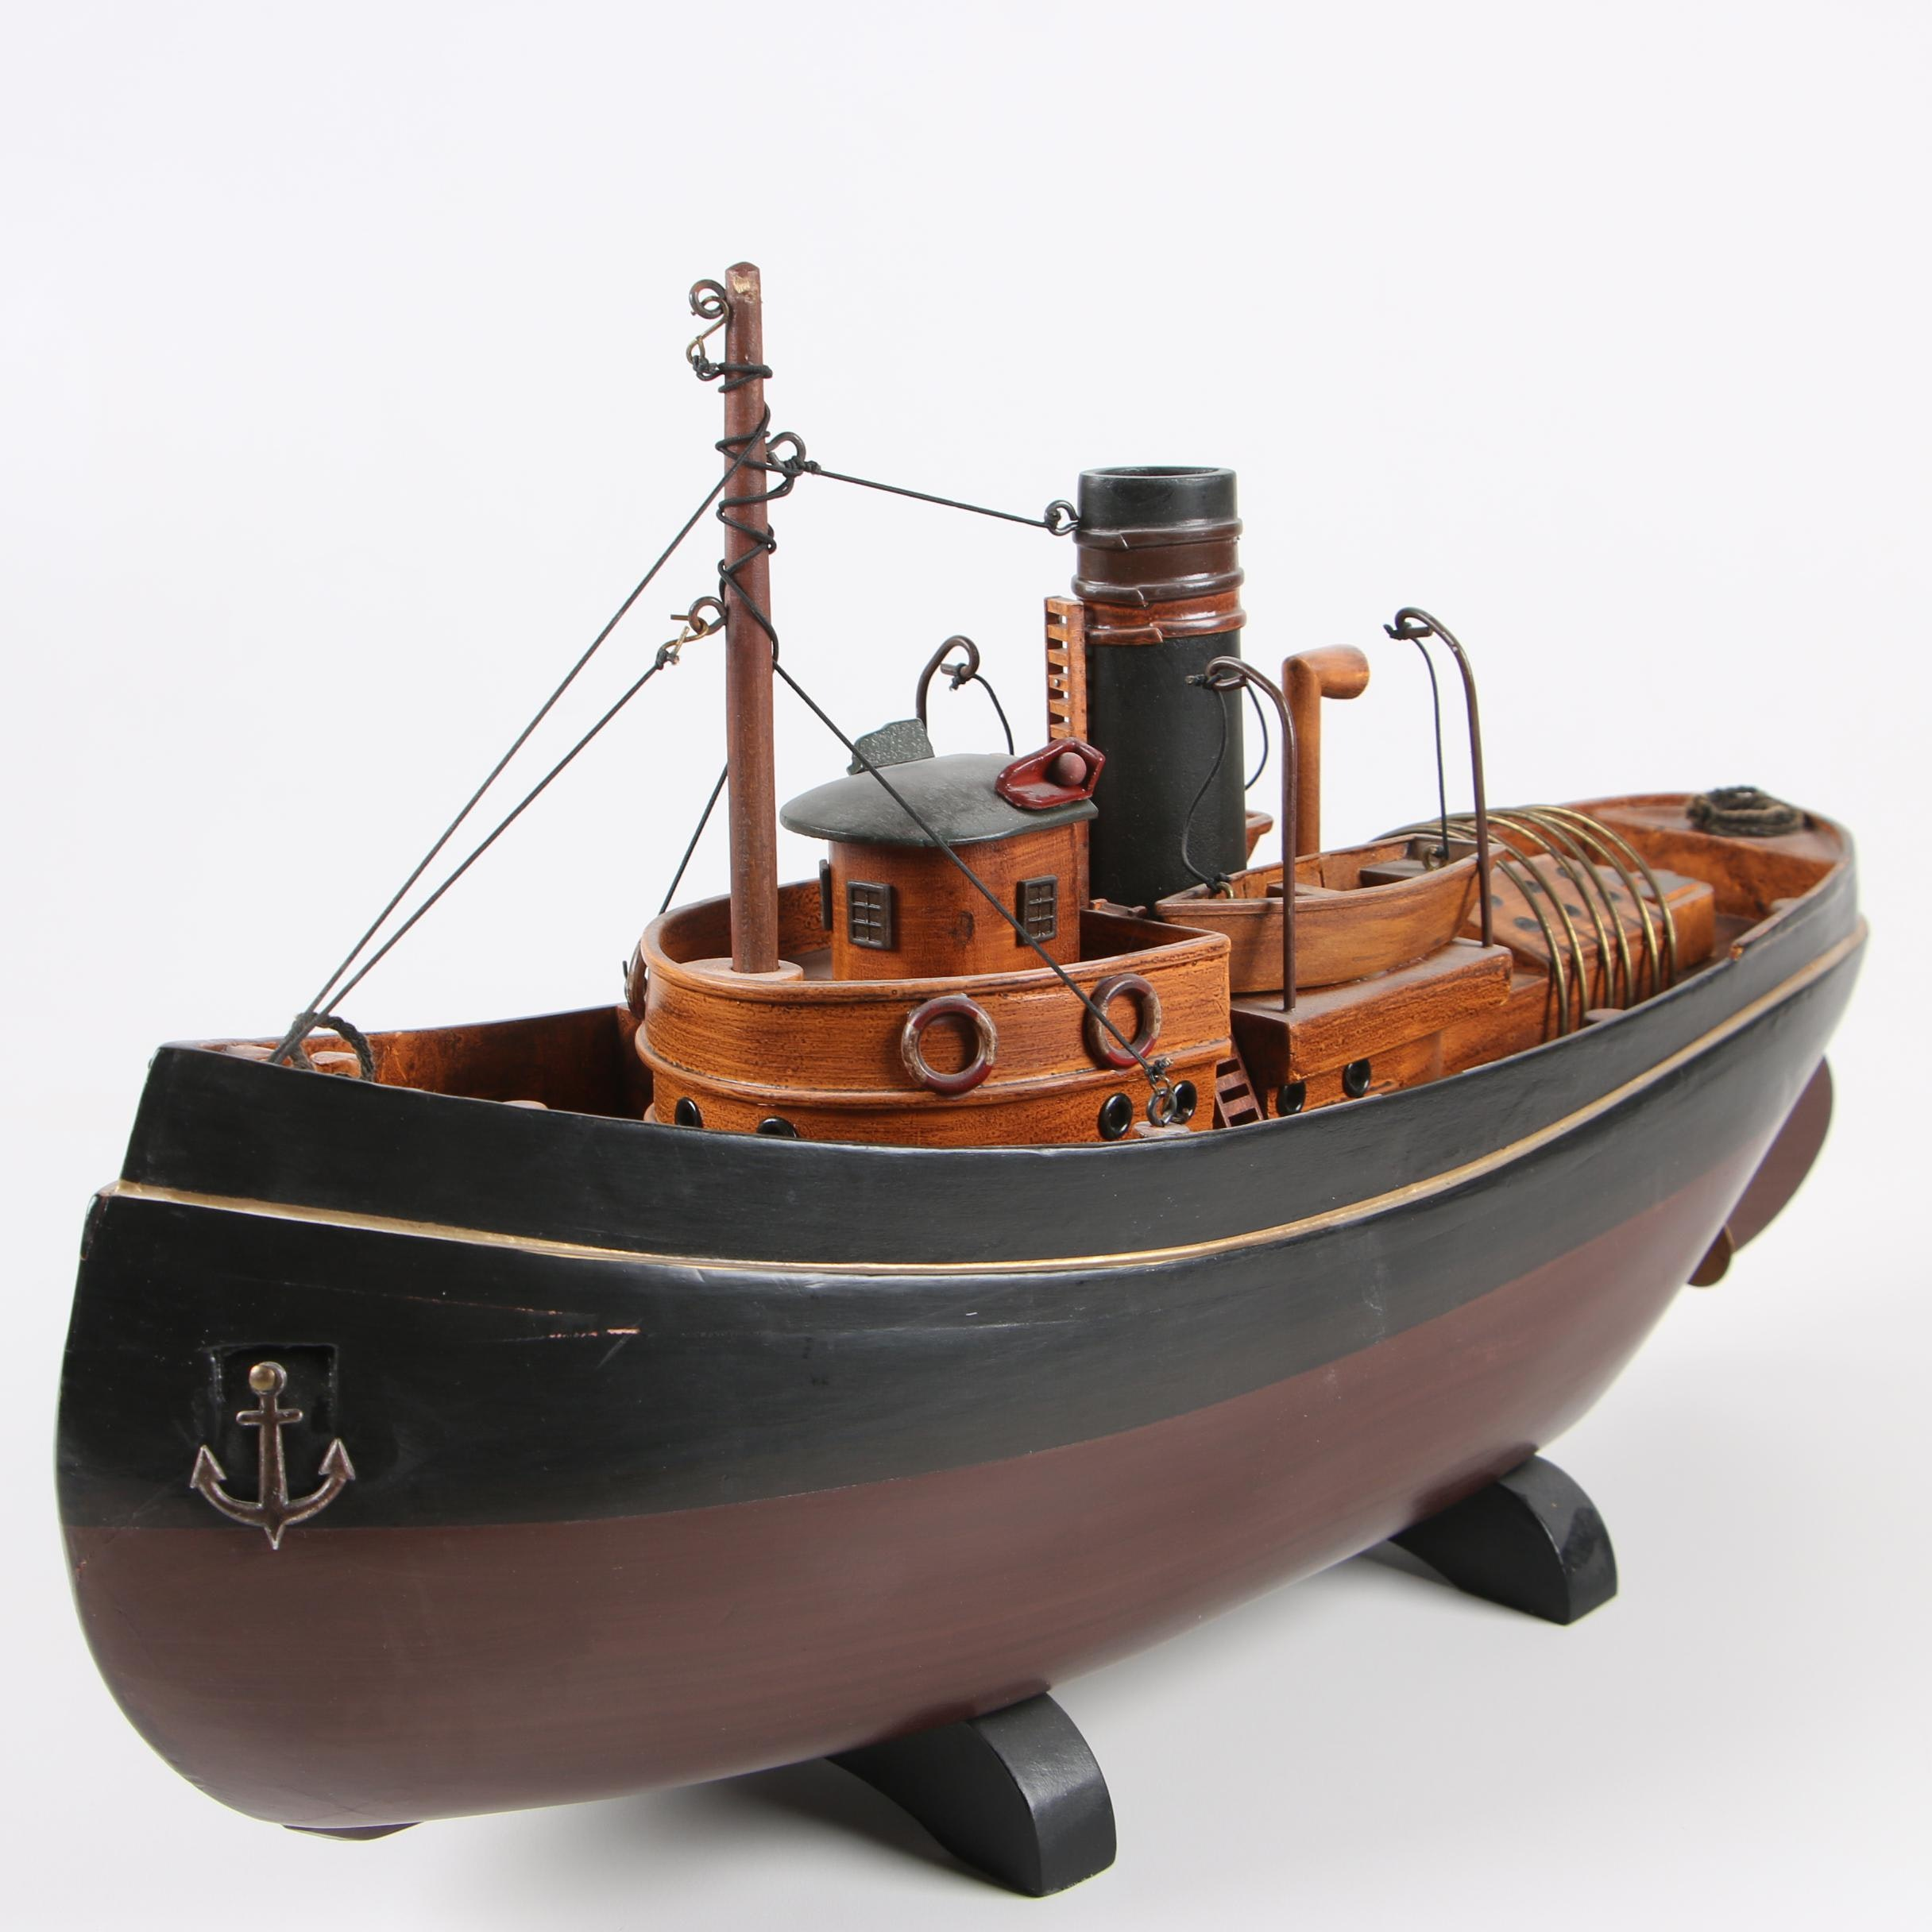 Decorative Painted Wooden Model of 20th Century Tugboat